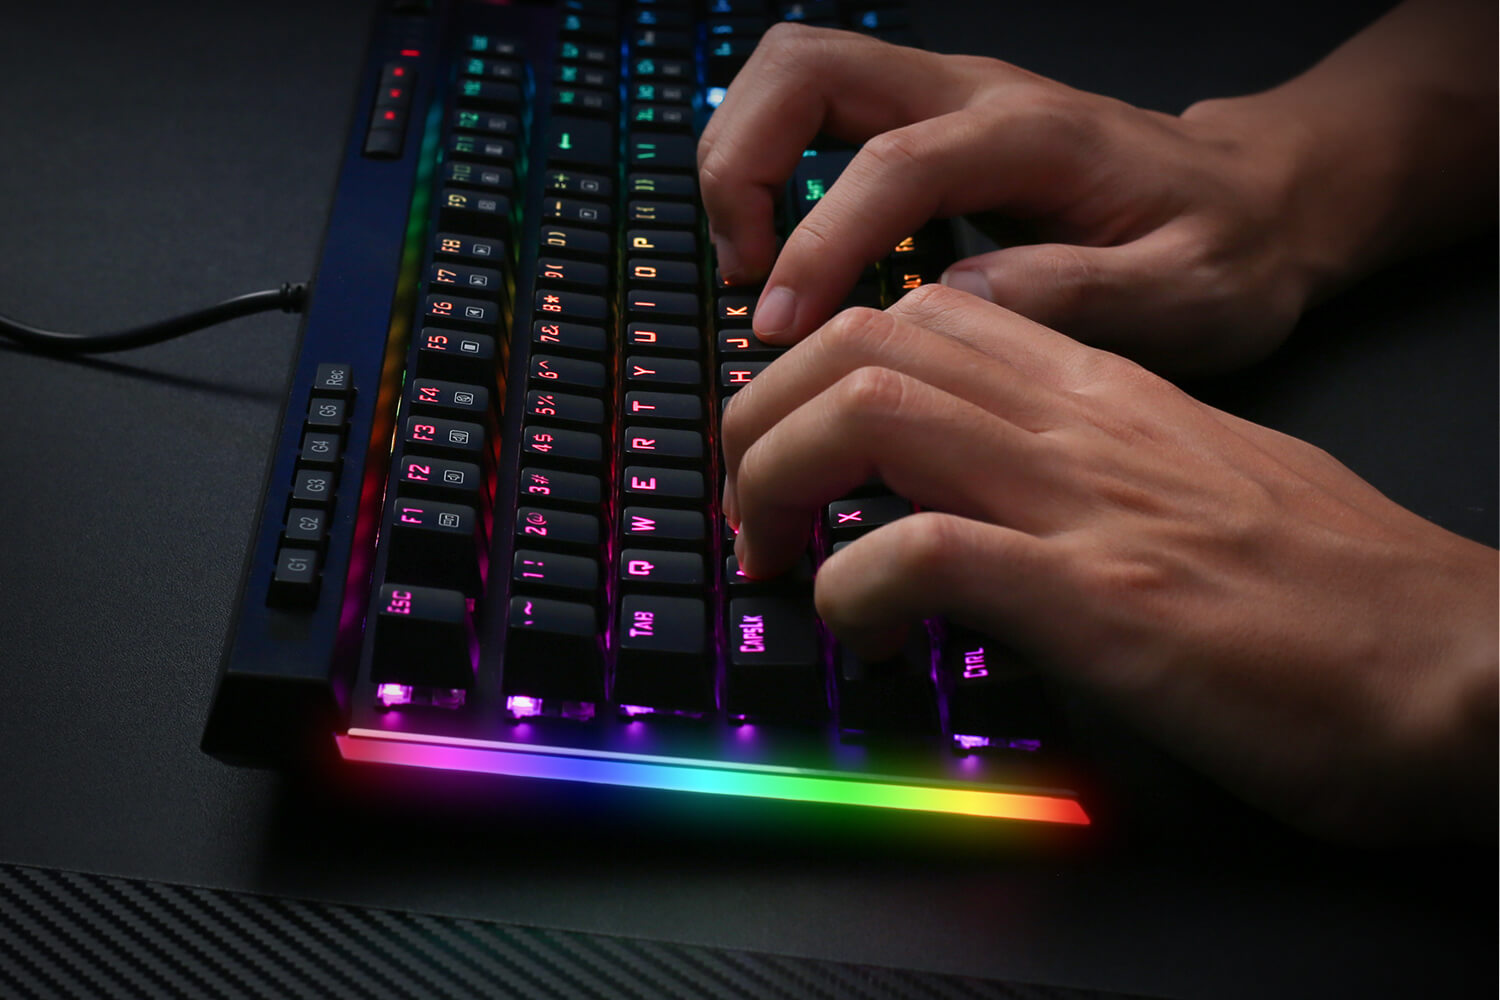 Redragon k580 with RGB Side Lights